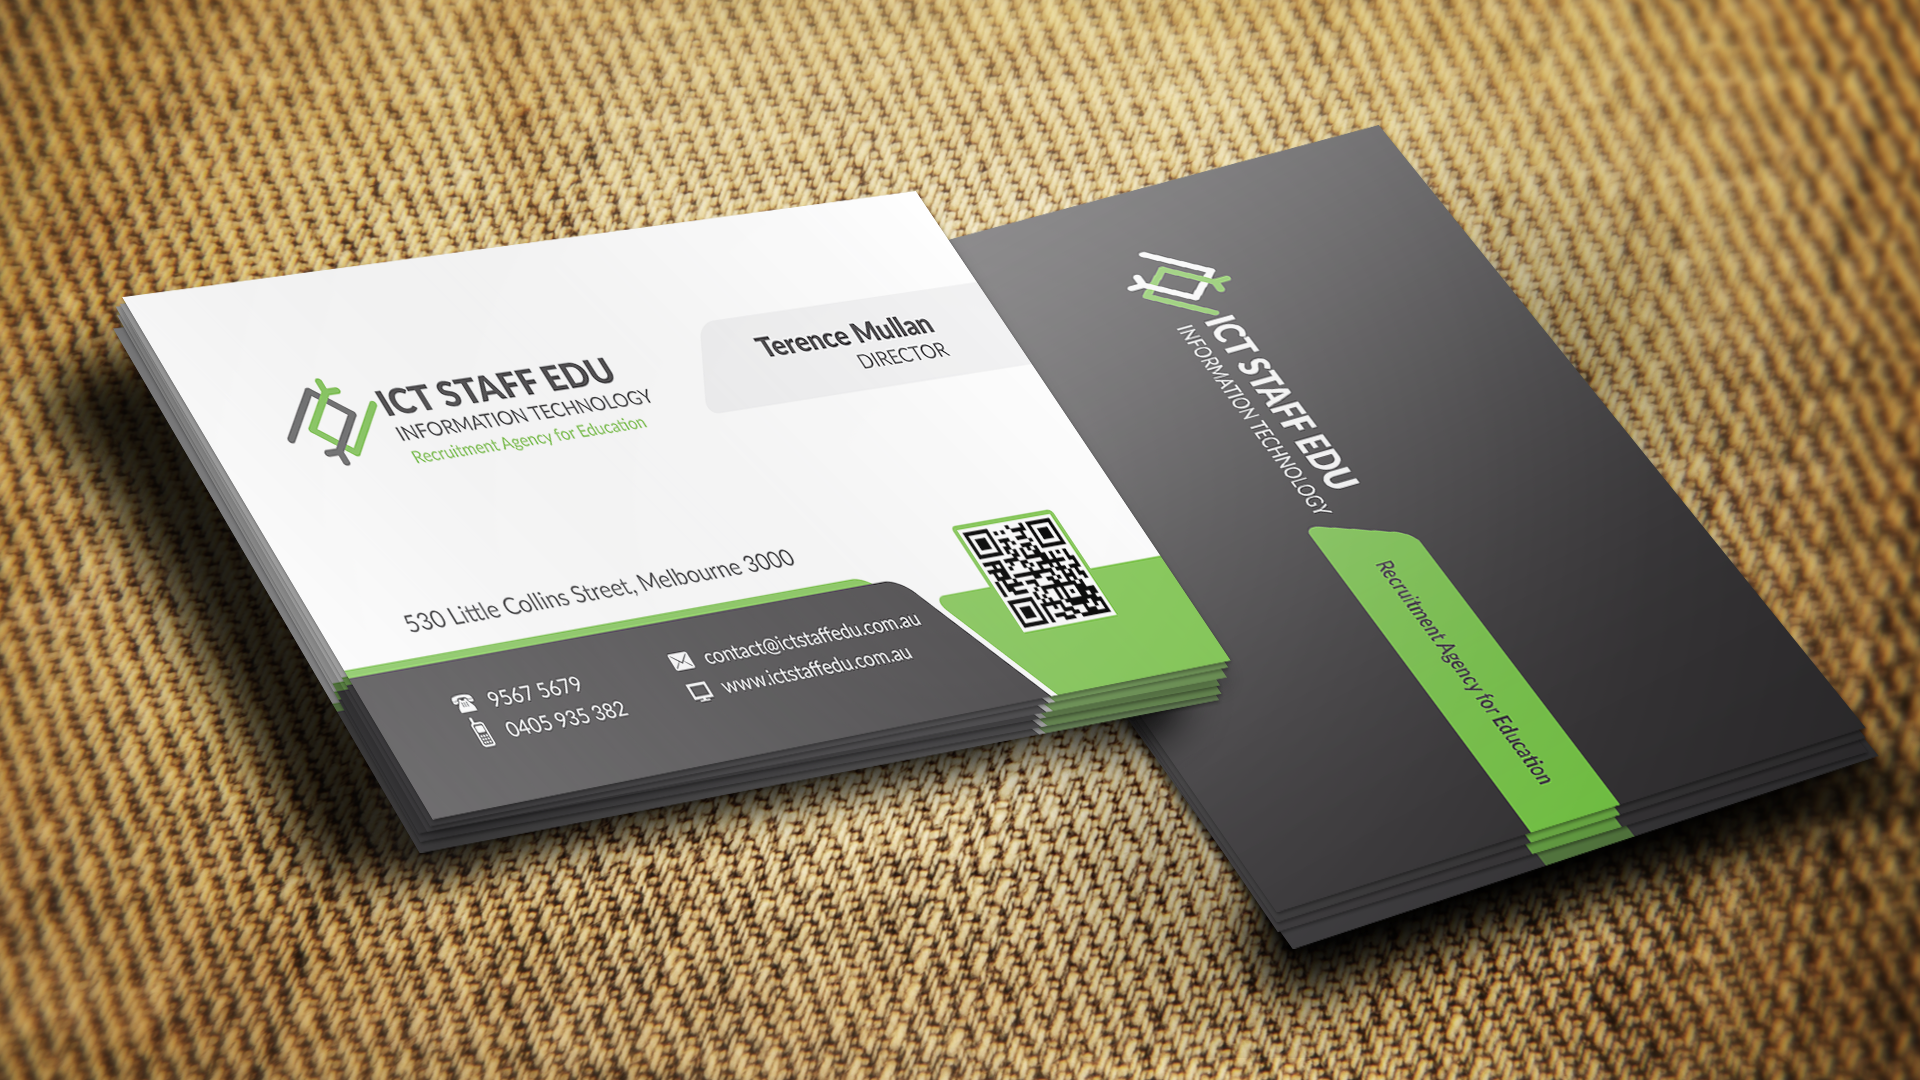 How to design business cards business card design tips - oukas.info